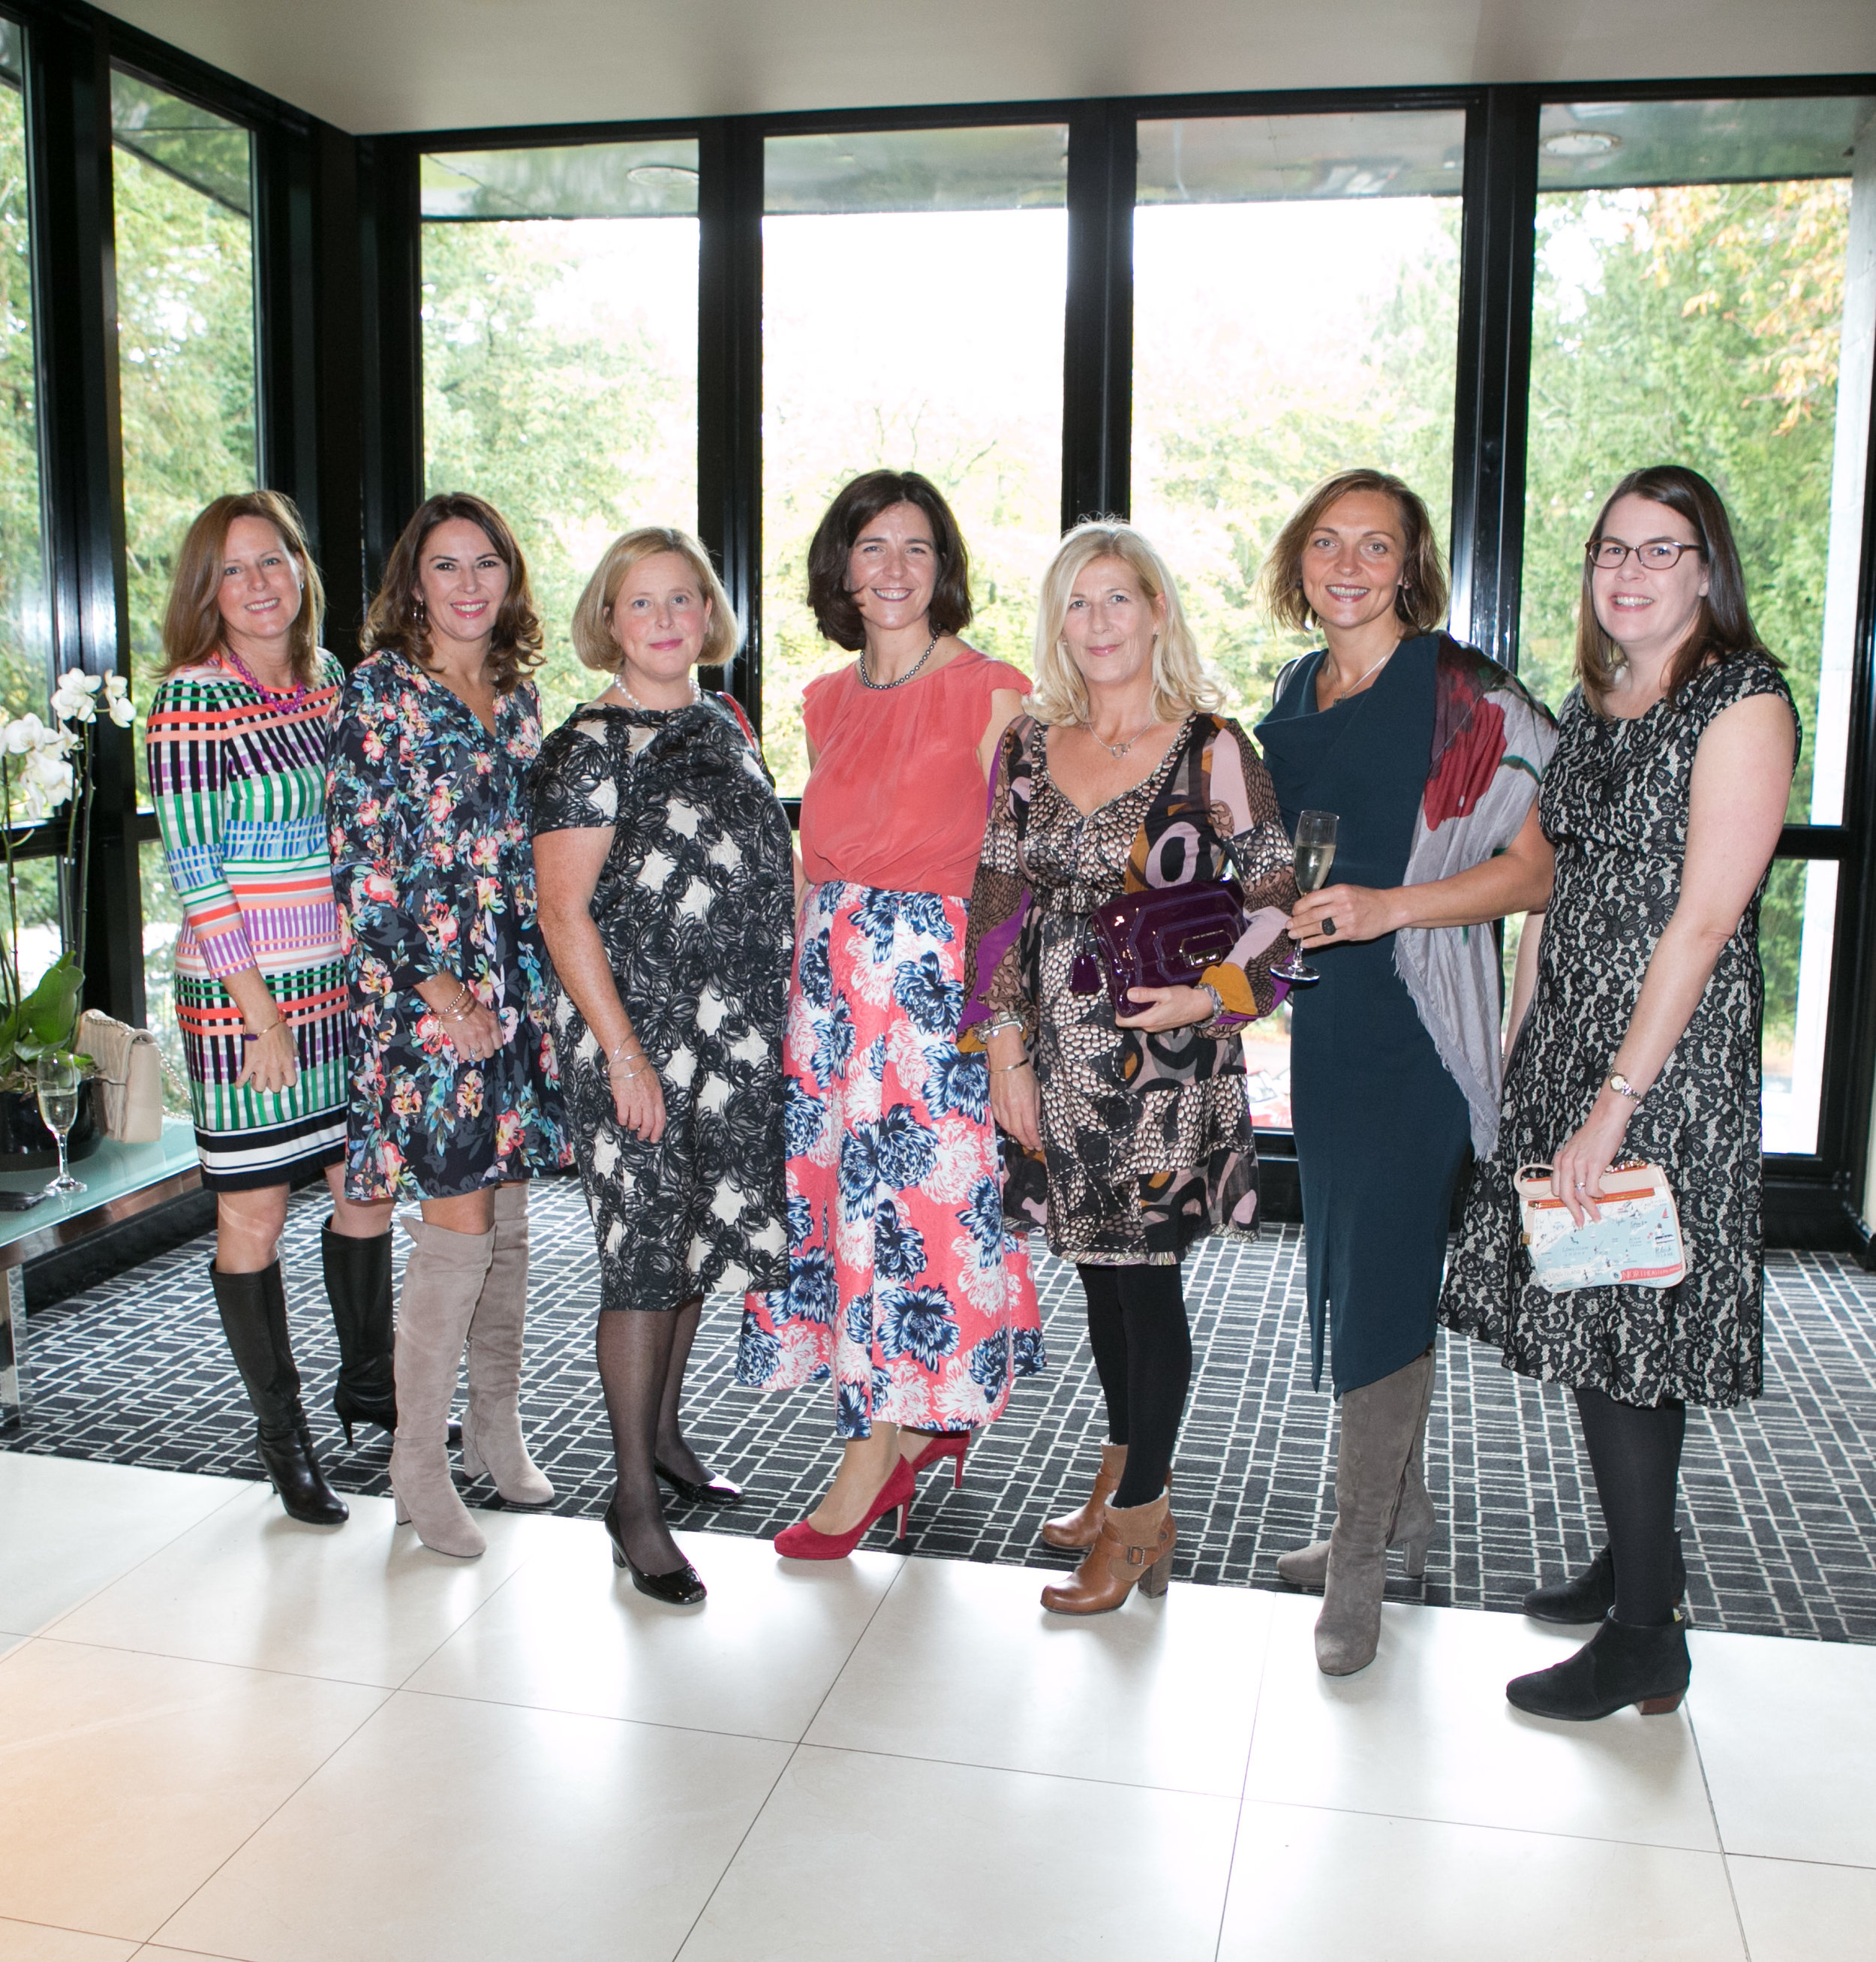 Kinsale Ladies; Kara Donoghue, Anne Gavin, Catherine Wilson, Rachel Keating, Janice Coomey, Tatyana Volkada and Courtney Collins at the Annual Aer Lingus Autumn Lunch in aid of Cork ARC Cancer Support House.